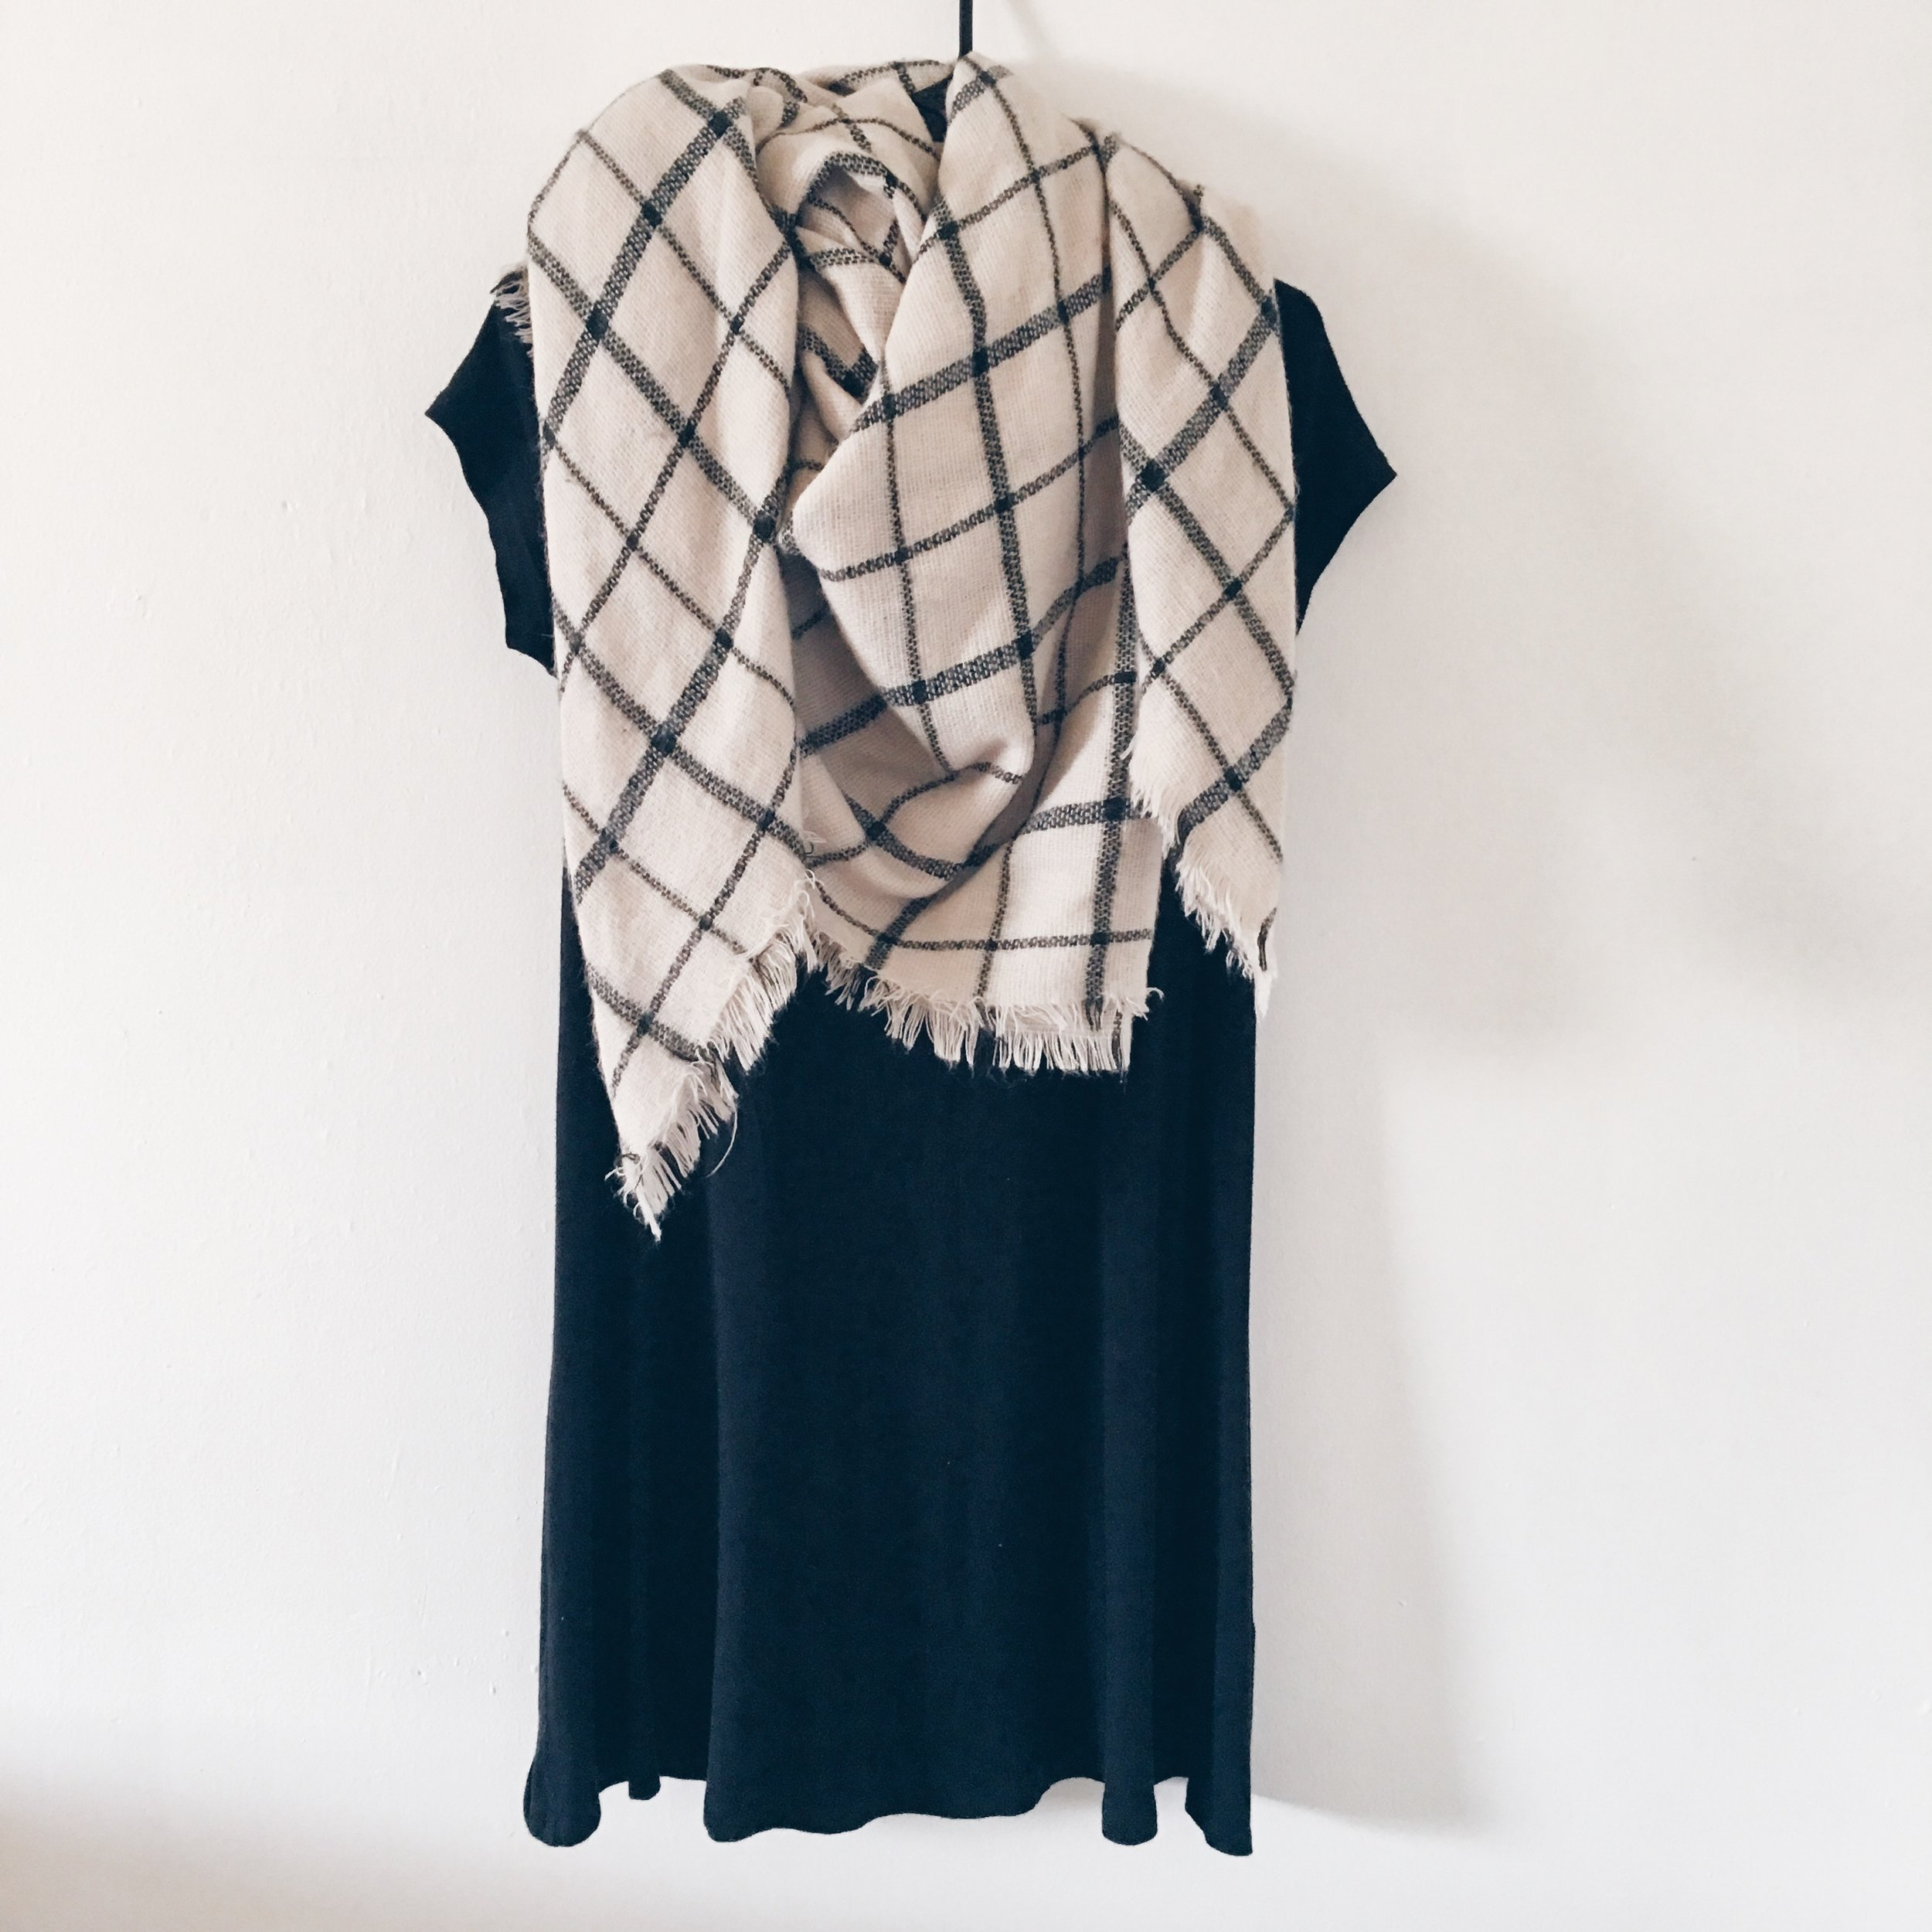 Blanket Scarf and LBD